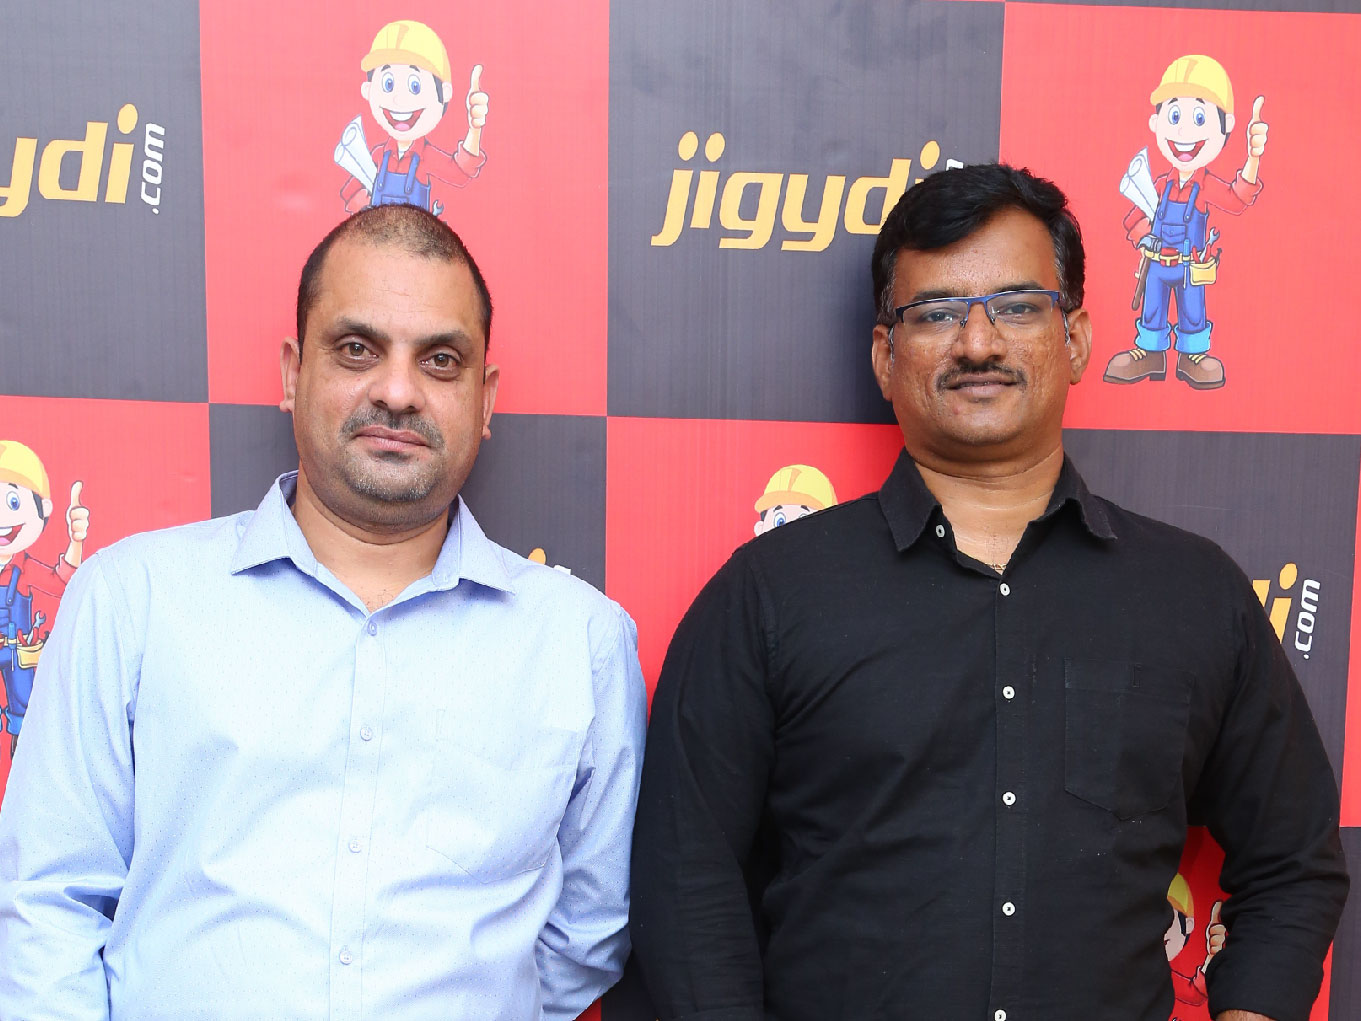 Jigydi disrupting the home services space